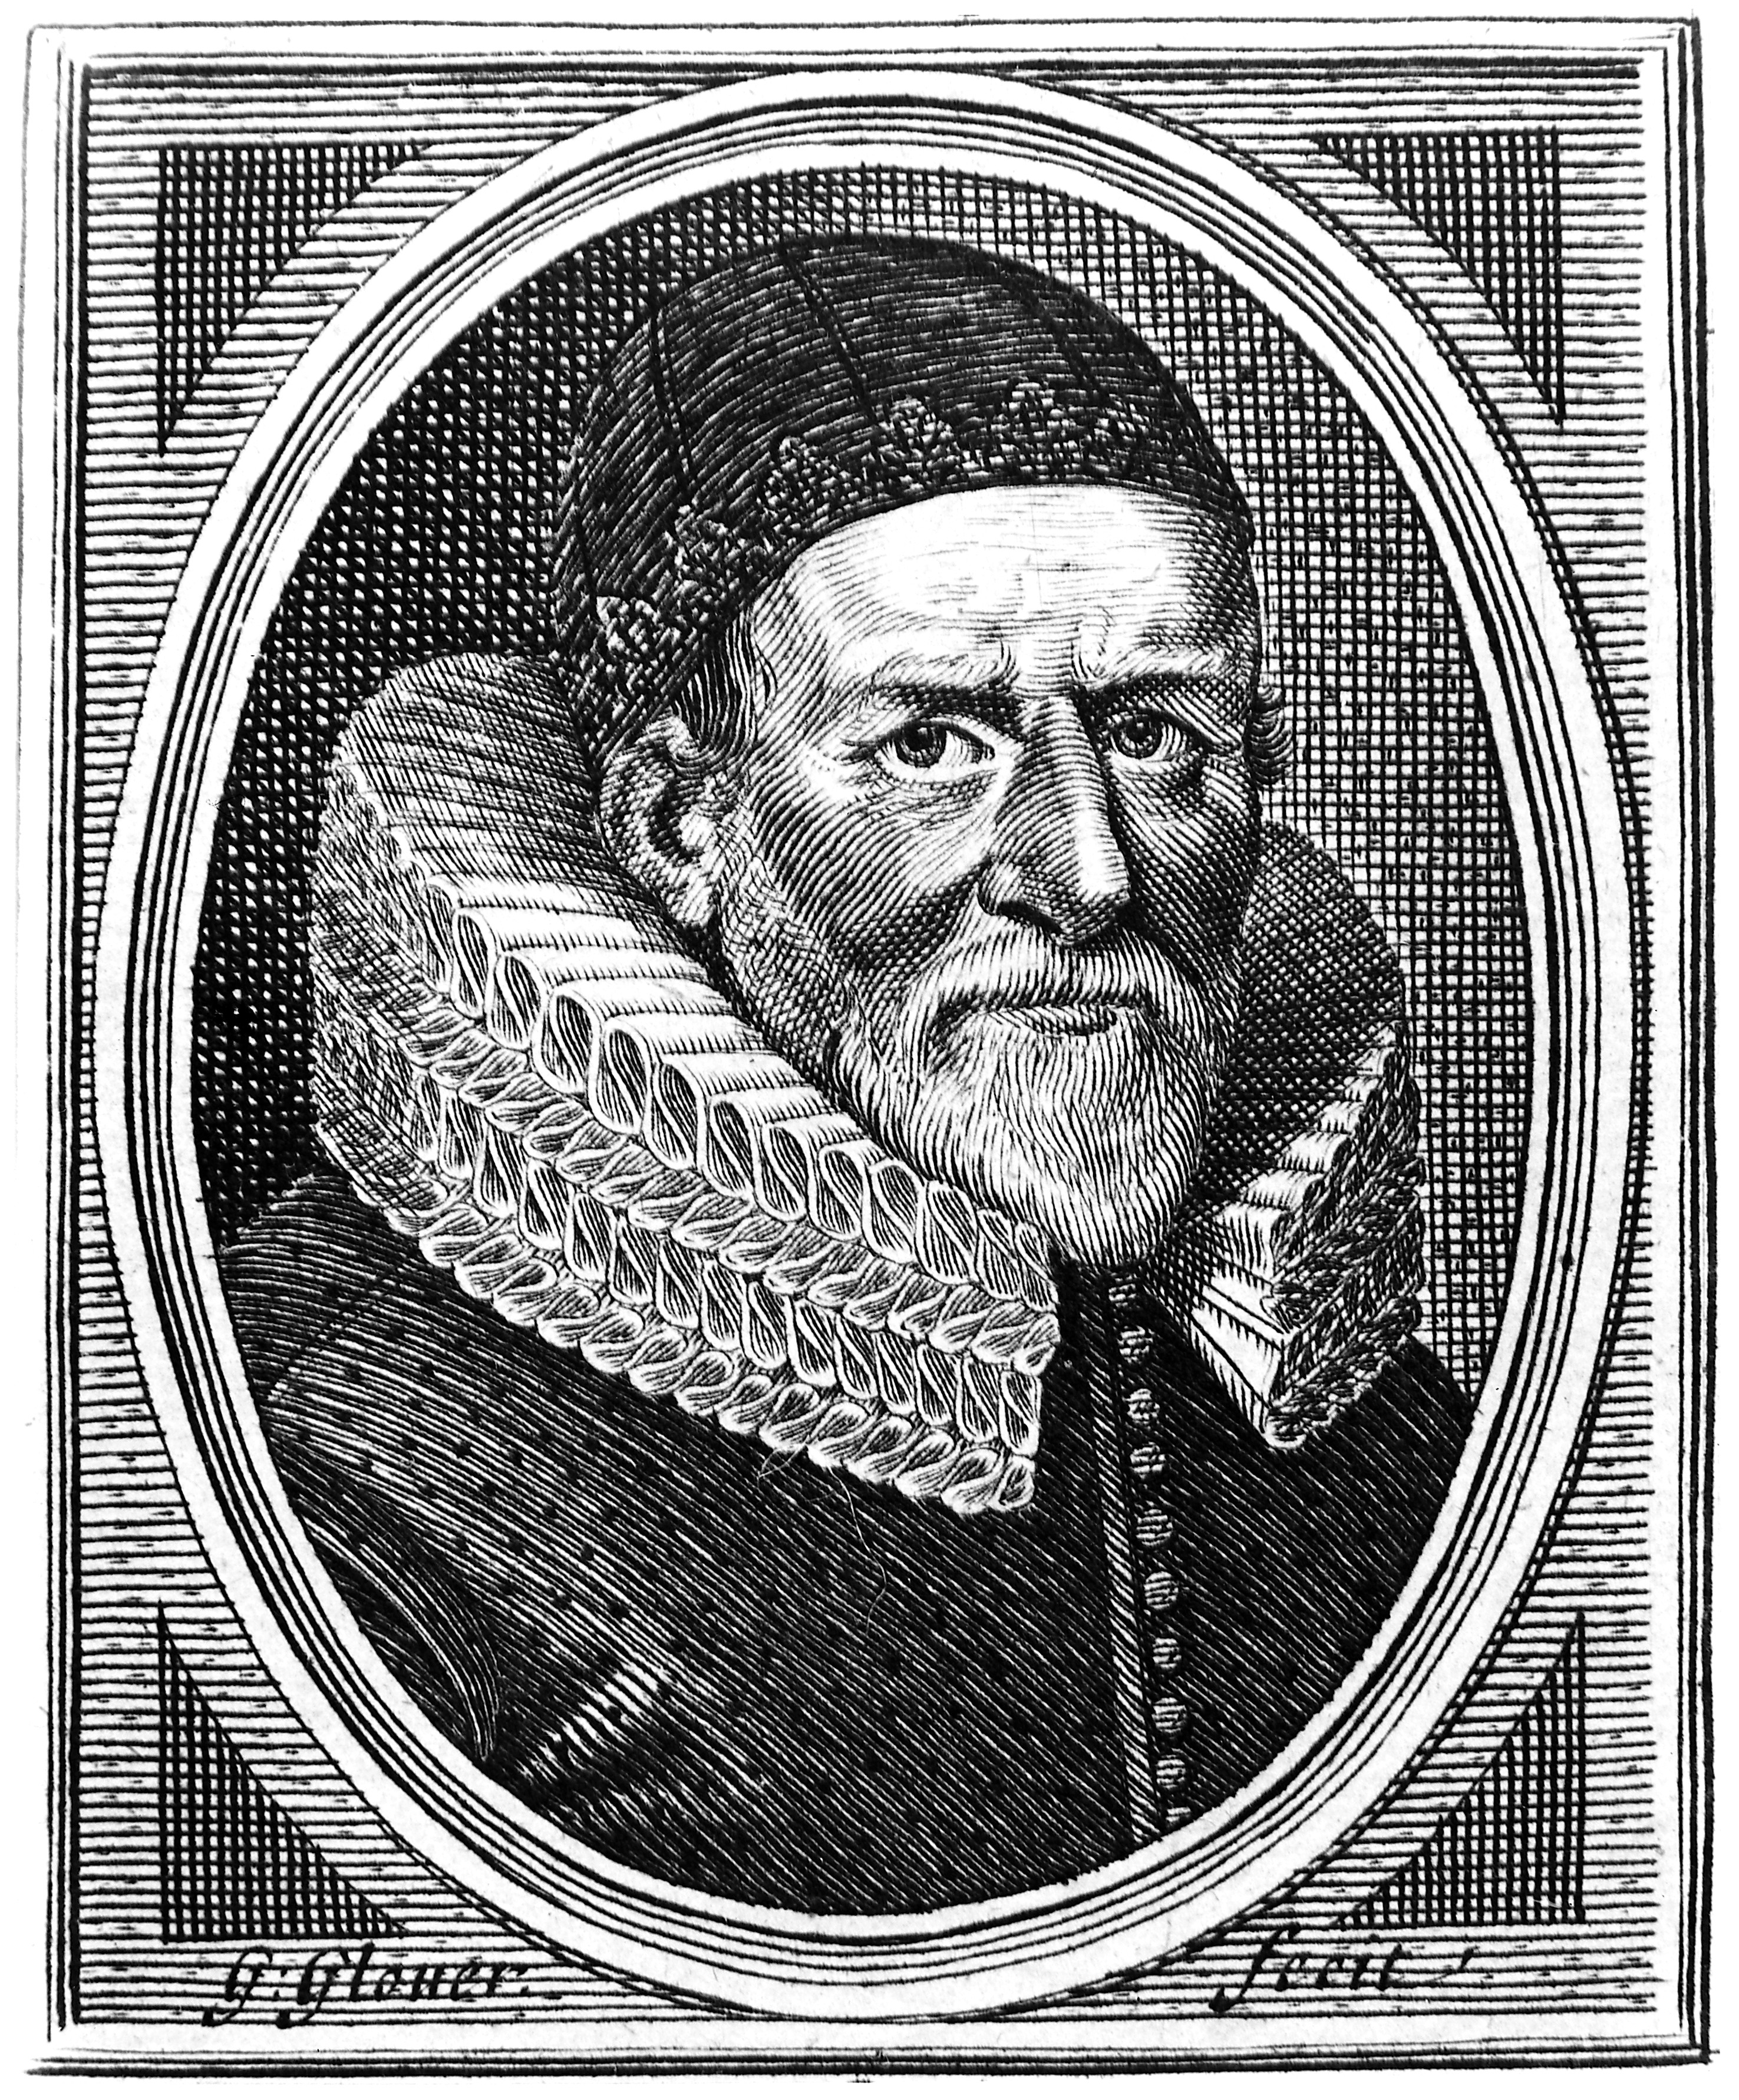 Line engraving by G. Glover, 1639. Wellcome M0005676